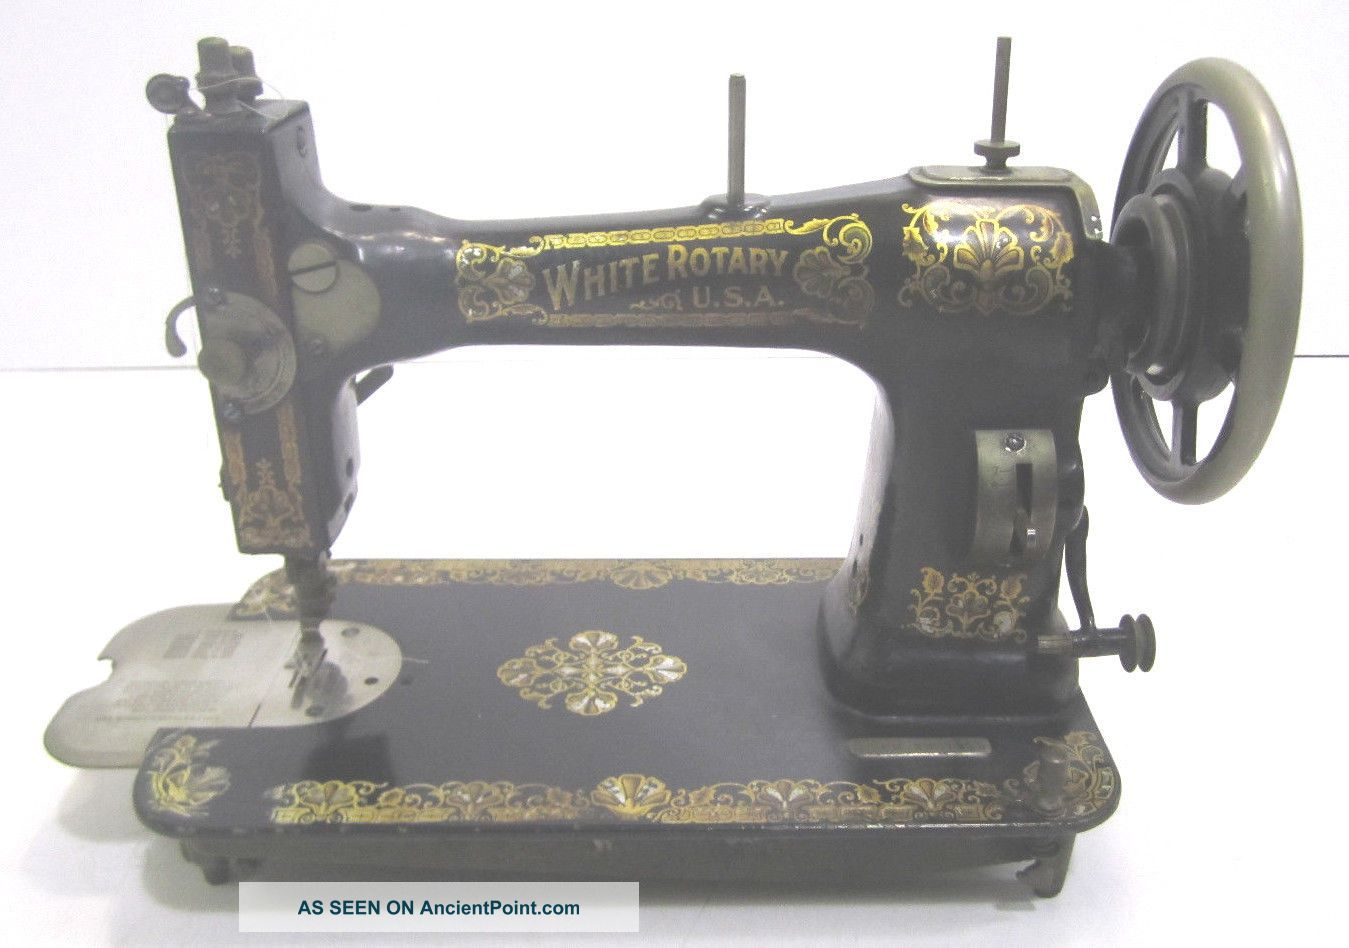 Vintage White Rotary Treadle Table Sewing Machine Patent 1911 Serial Fr2251687 Sewing Machines photo